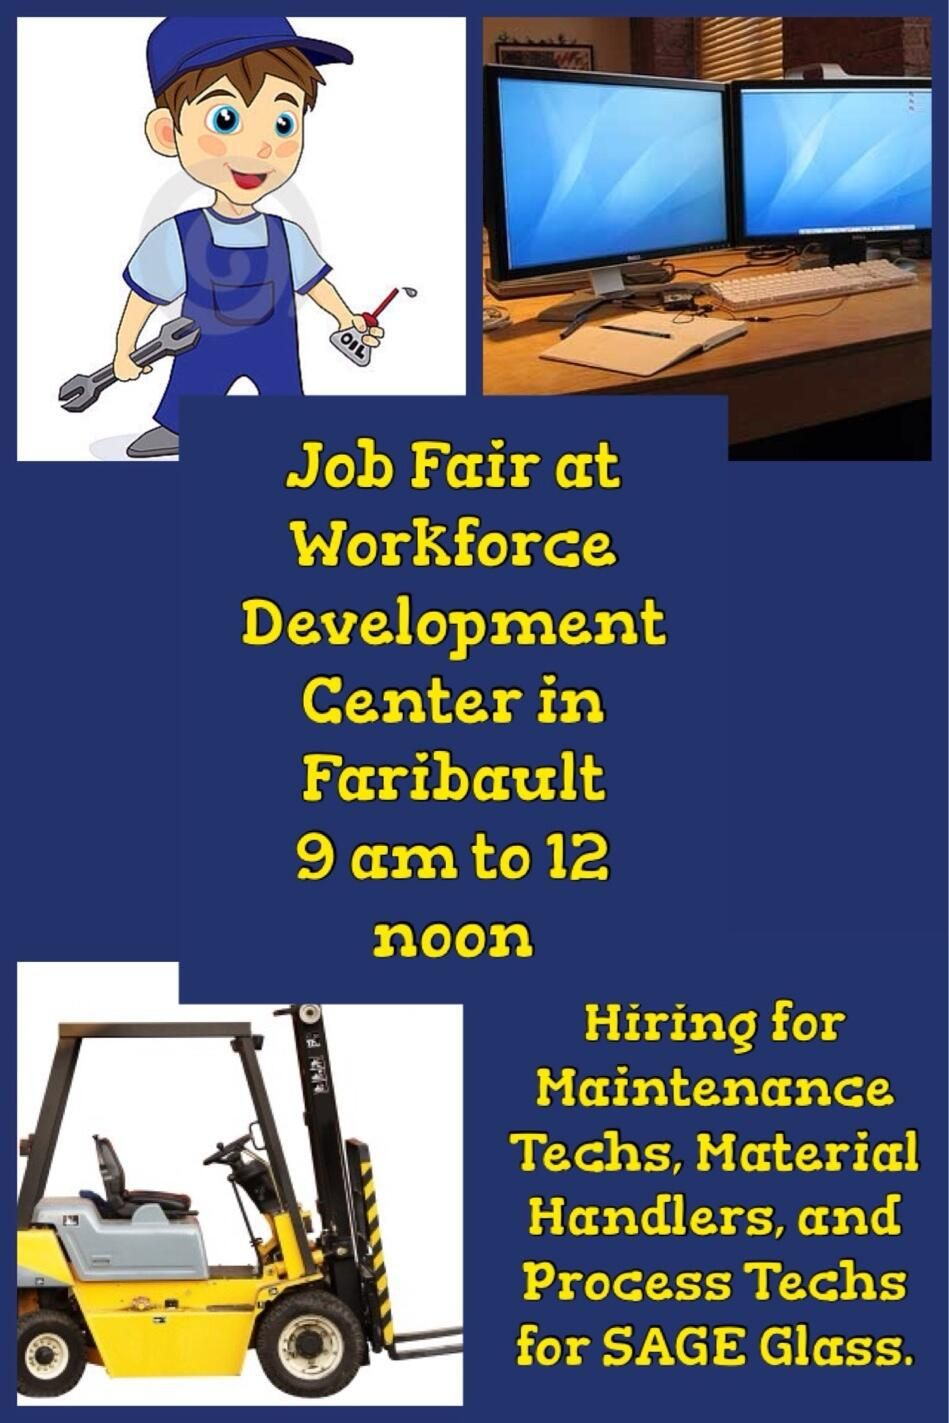 Job fair tomorrow december 17 from 9 am to 12 noon at the